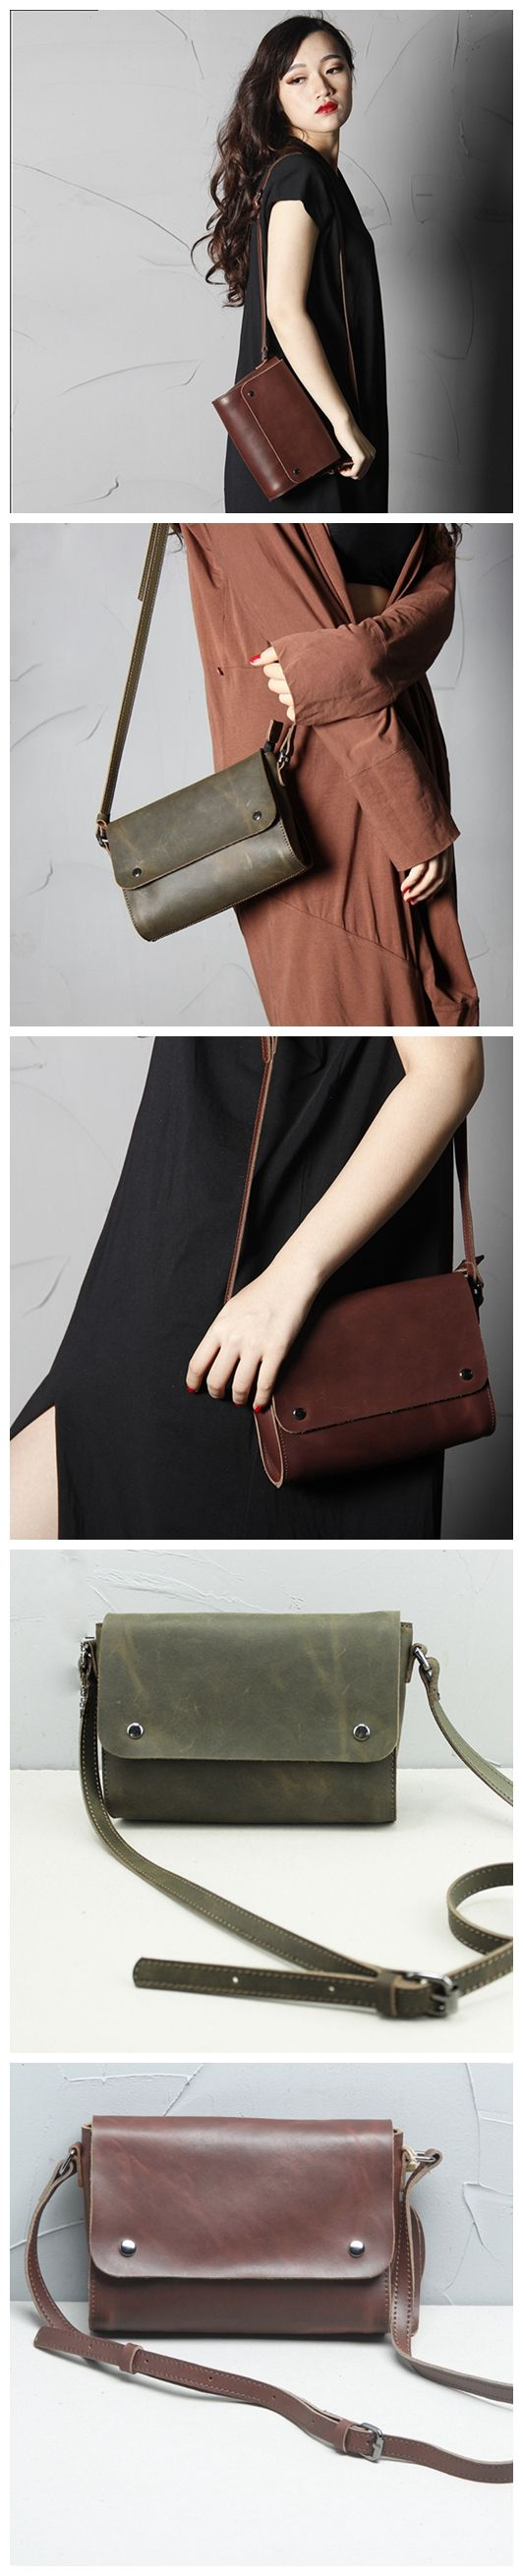 LEATHER MESSENGER, LEATHER BAG, WOMEN LEATHER FASHION BAG, LEATHER WORK, LEATHER GOODS,LEATHER DESIGN, WOMEN FASHION